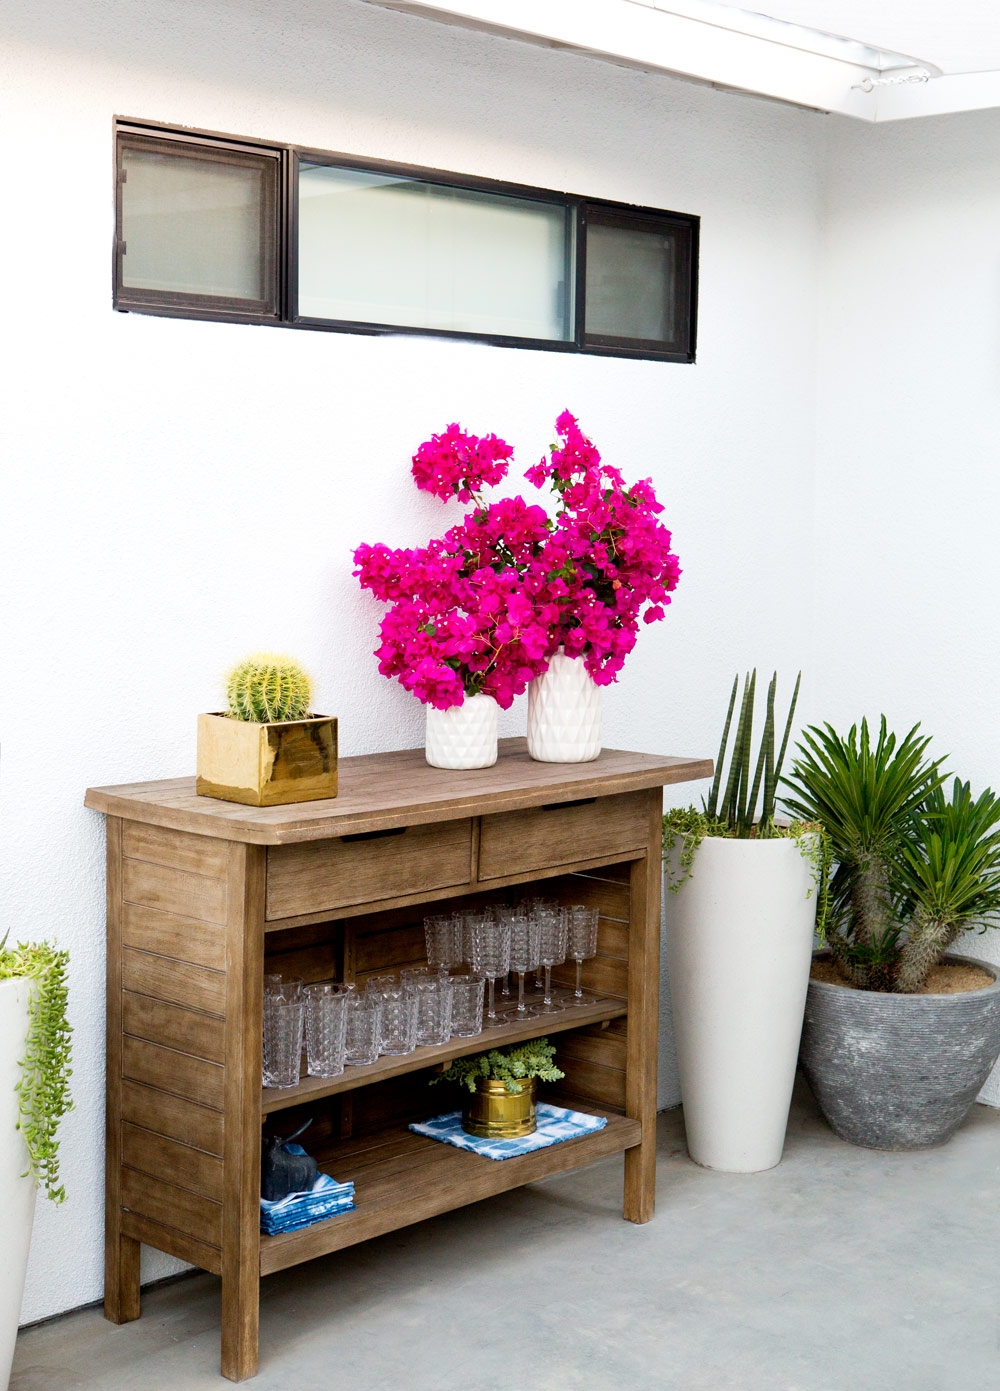 a_house_in_the_hills_modern_patio_makeover-2